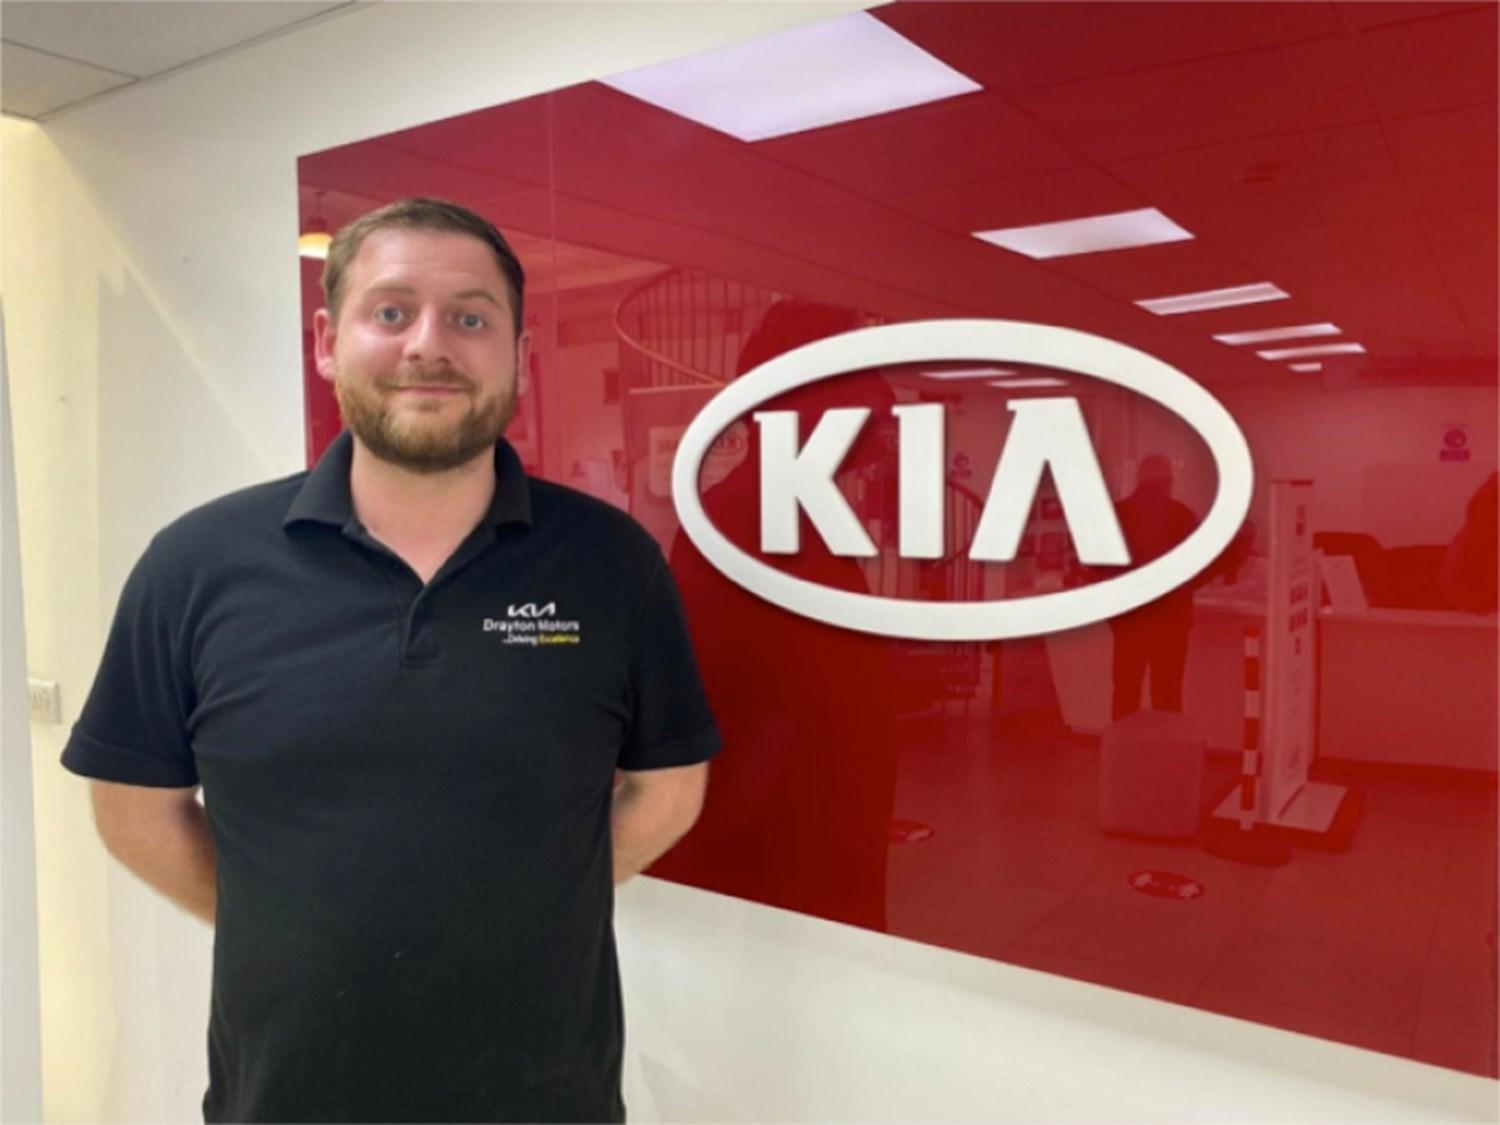 George in the Kia Showroom